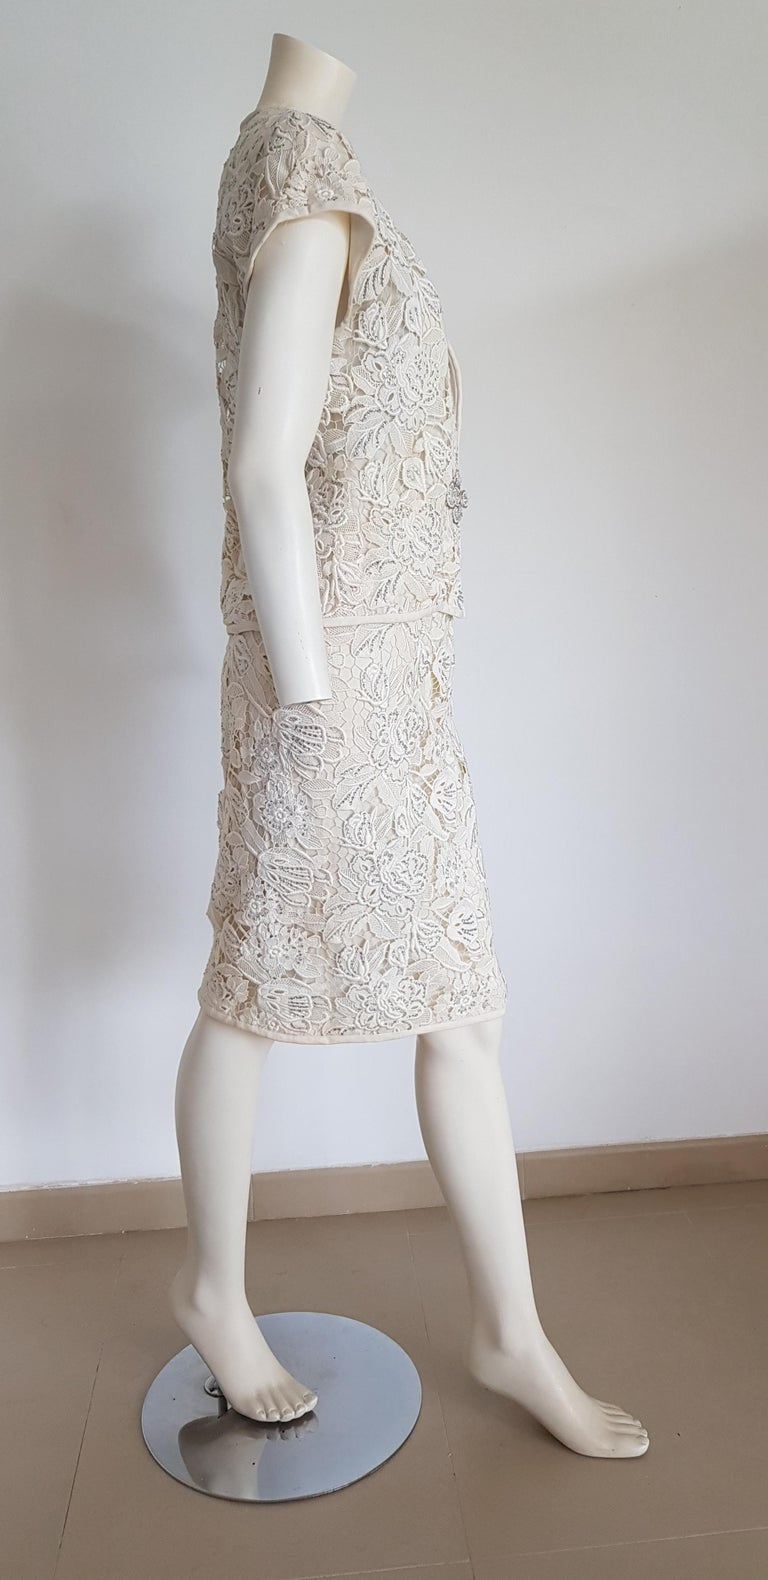 VALENTINO Haute Couture Swarovski Diamonds Embroidered Lace Beige Suit - Unworn For Sale 1